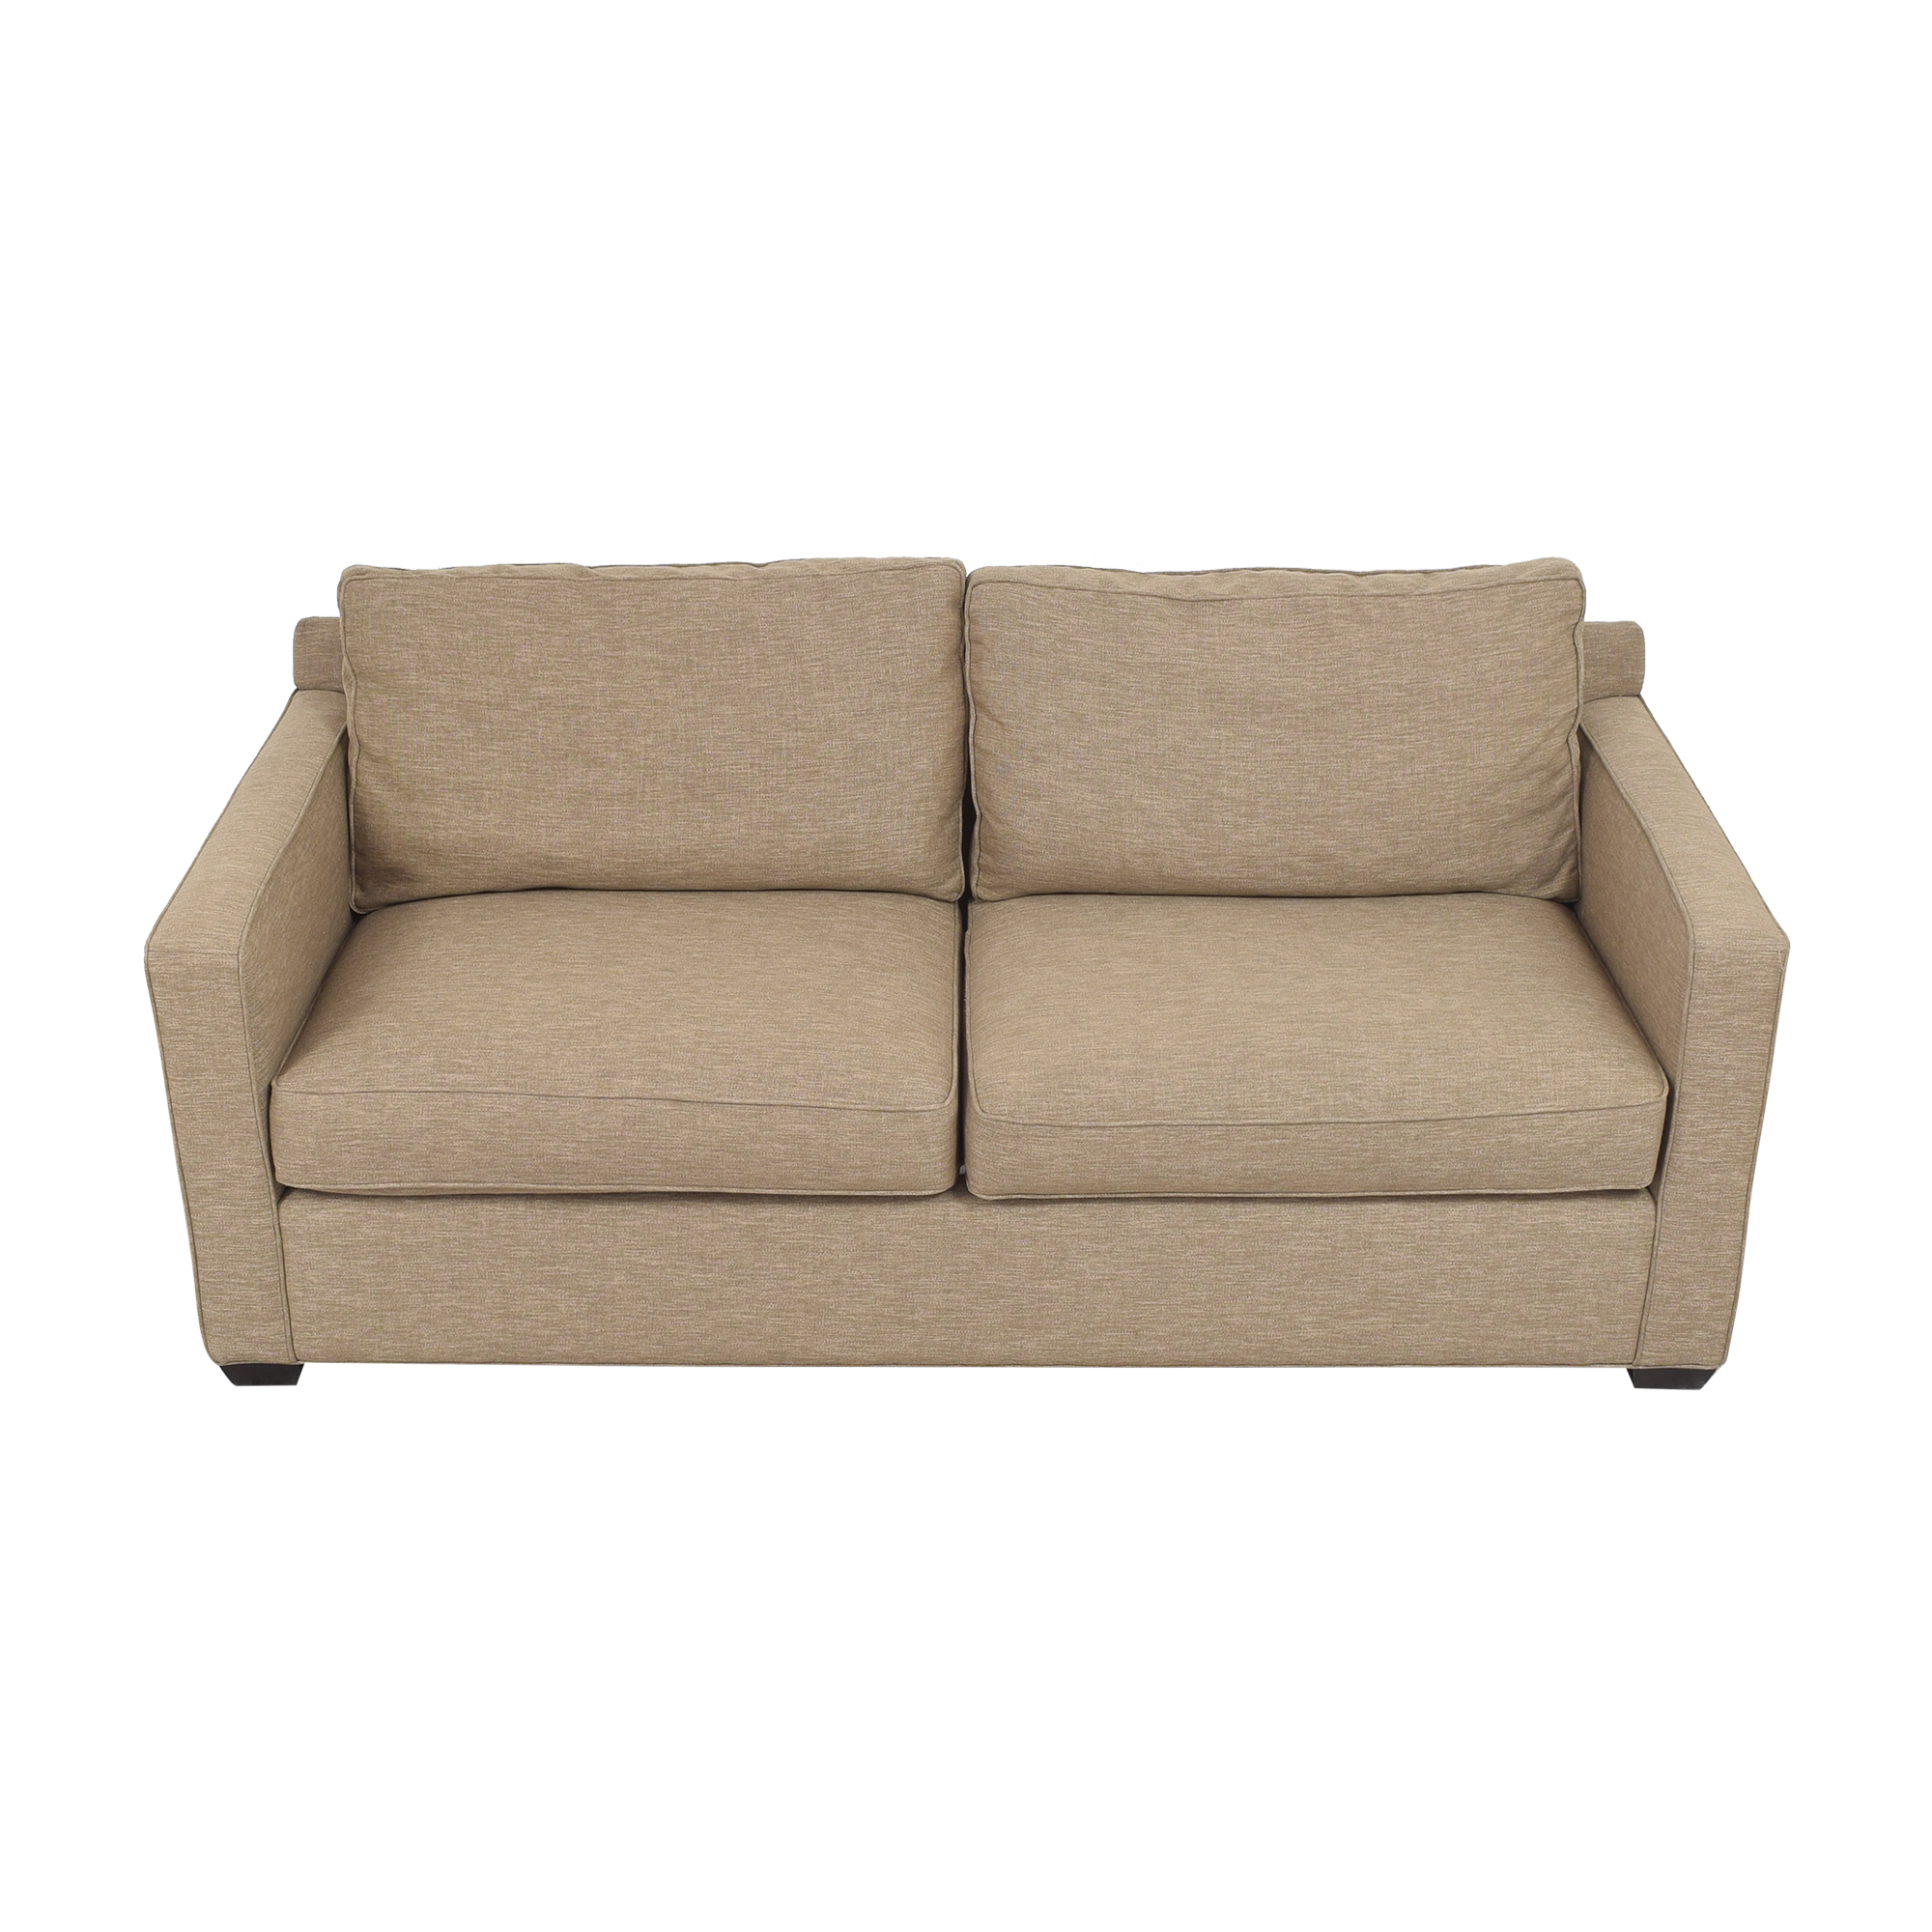 Crate & Barrel Crate & Barrel Davis Track Arm Sofa nyc